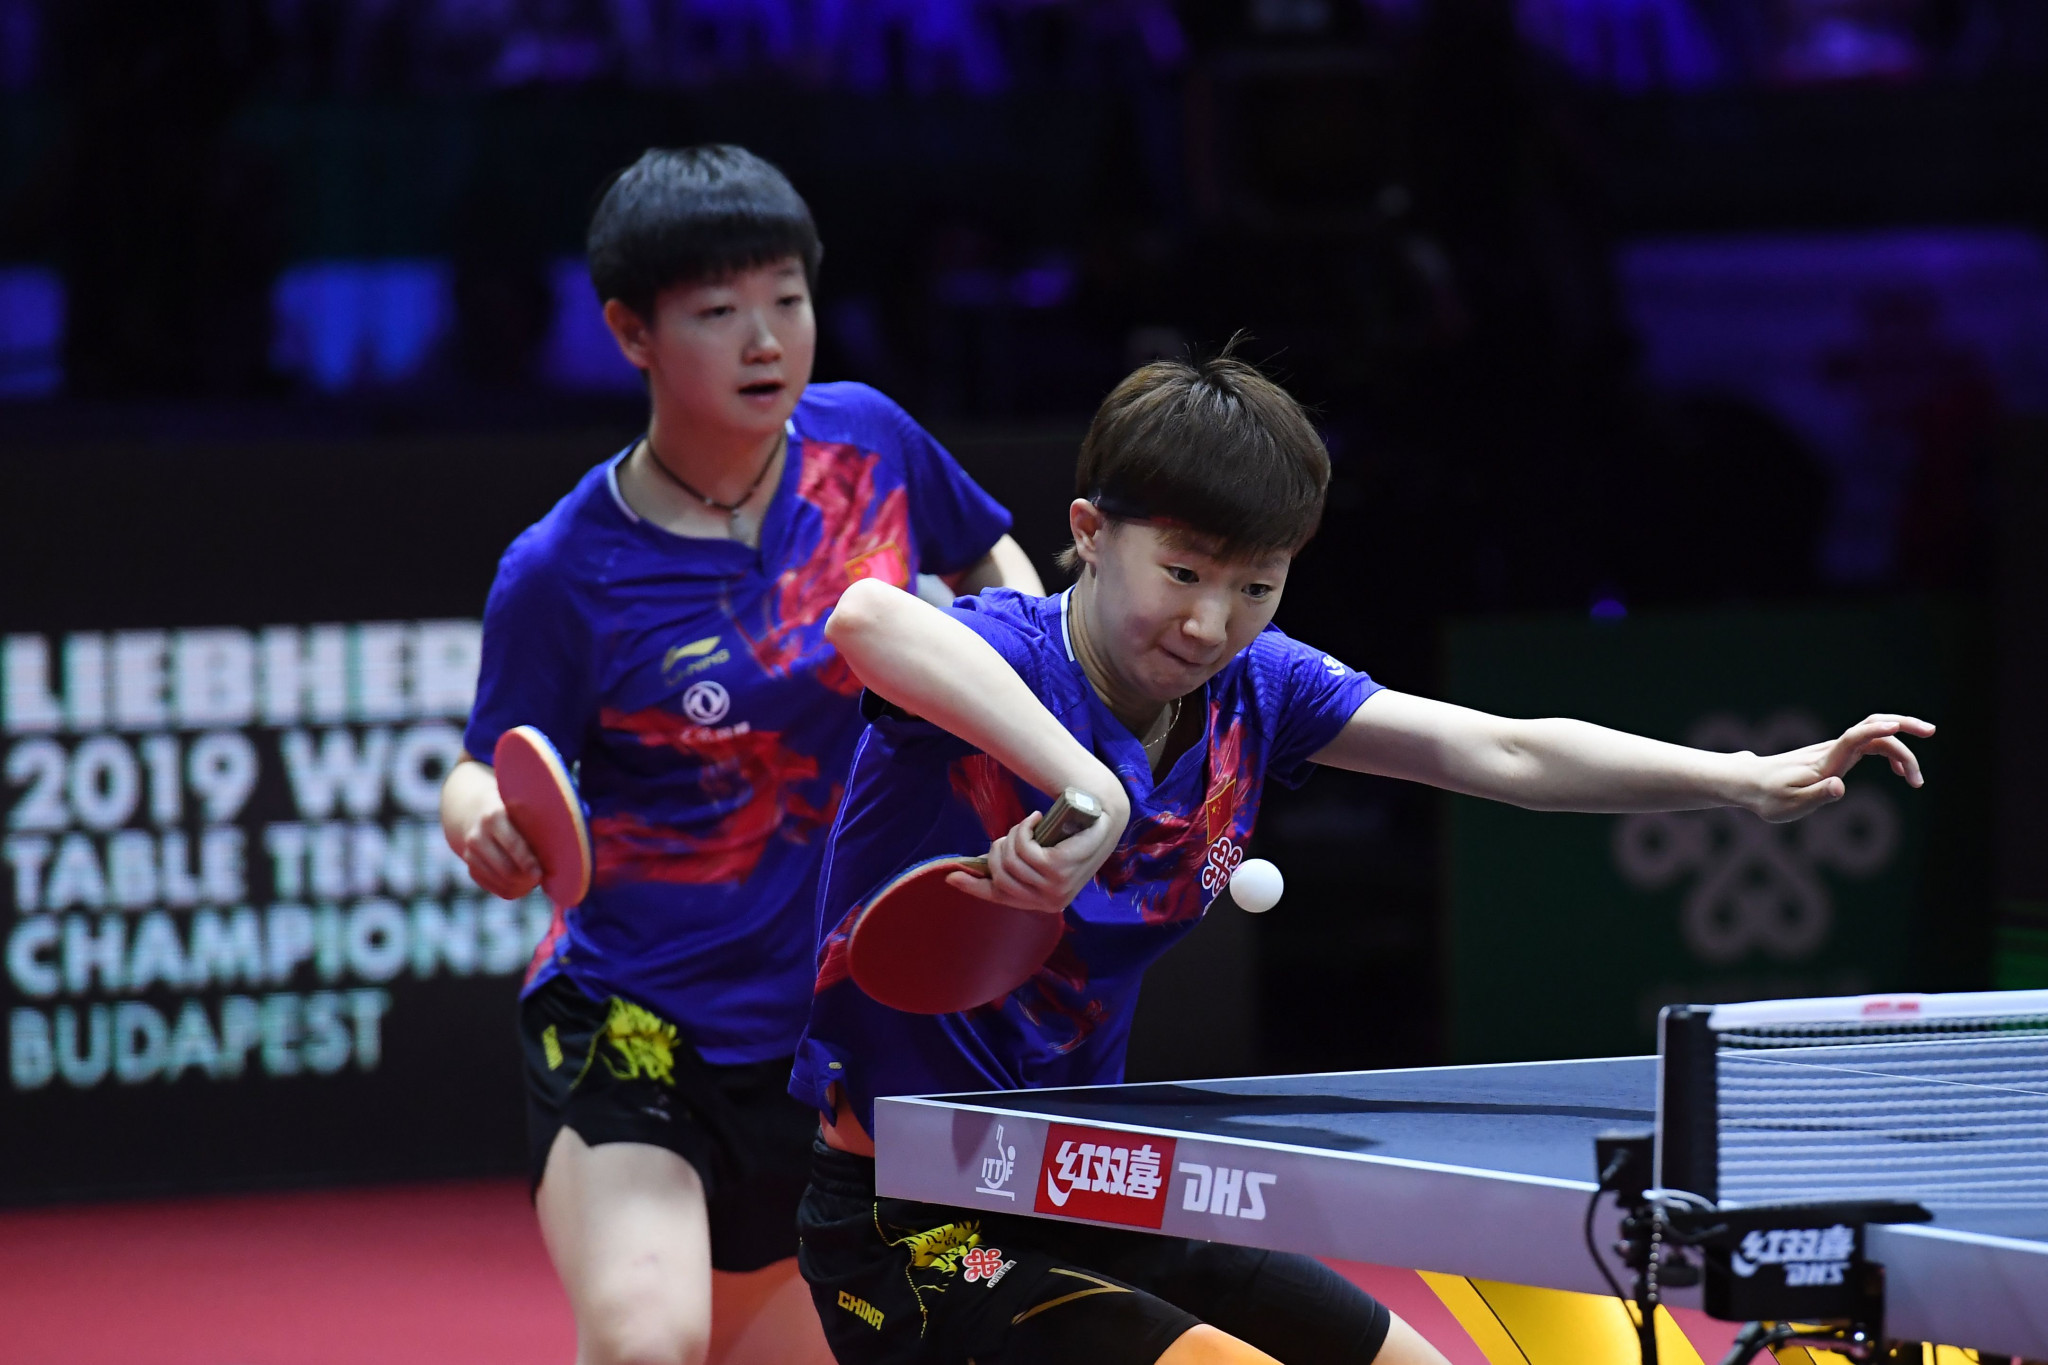 Players from China won all five events the last time the World Table Tennis Championships took place, including Wang Manyu and Sun Yingsha in the women's doubles ©Getty Images